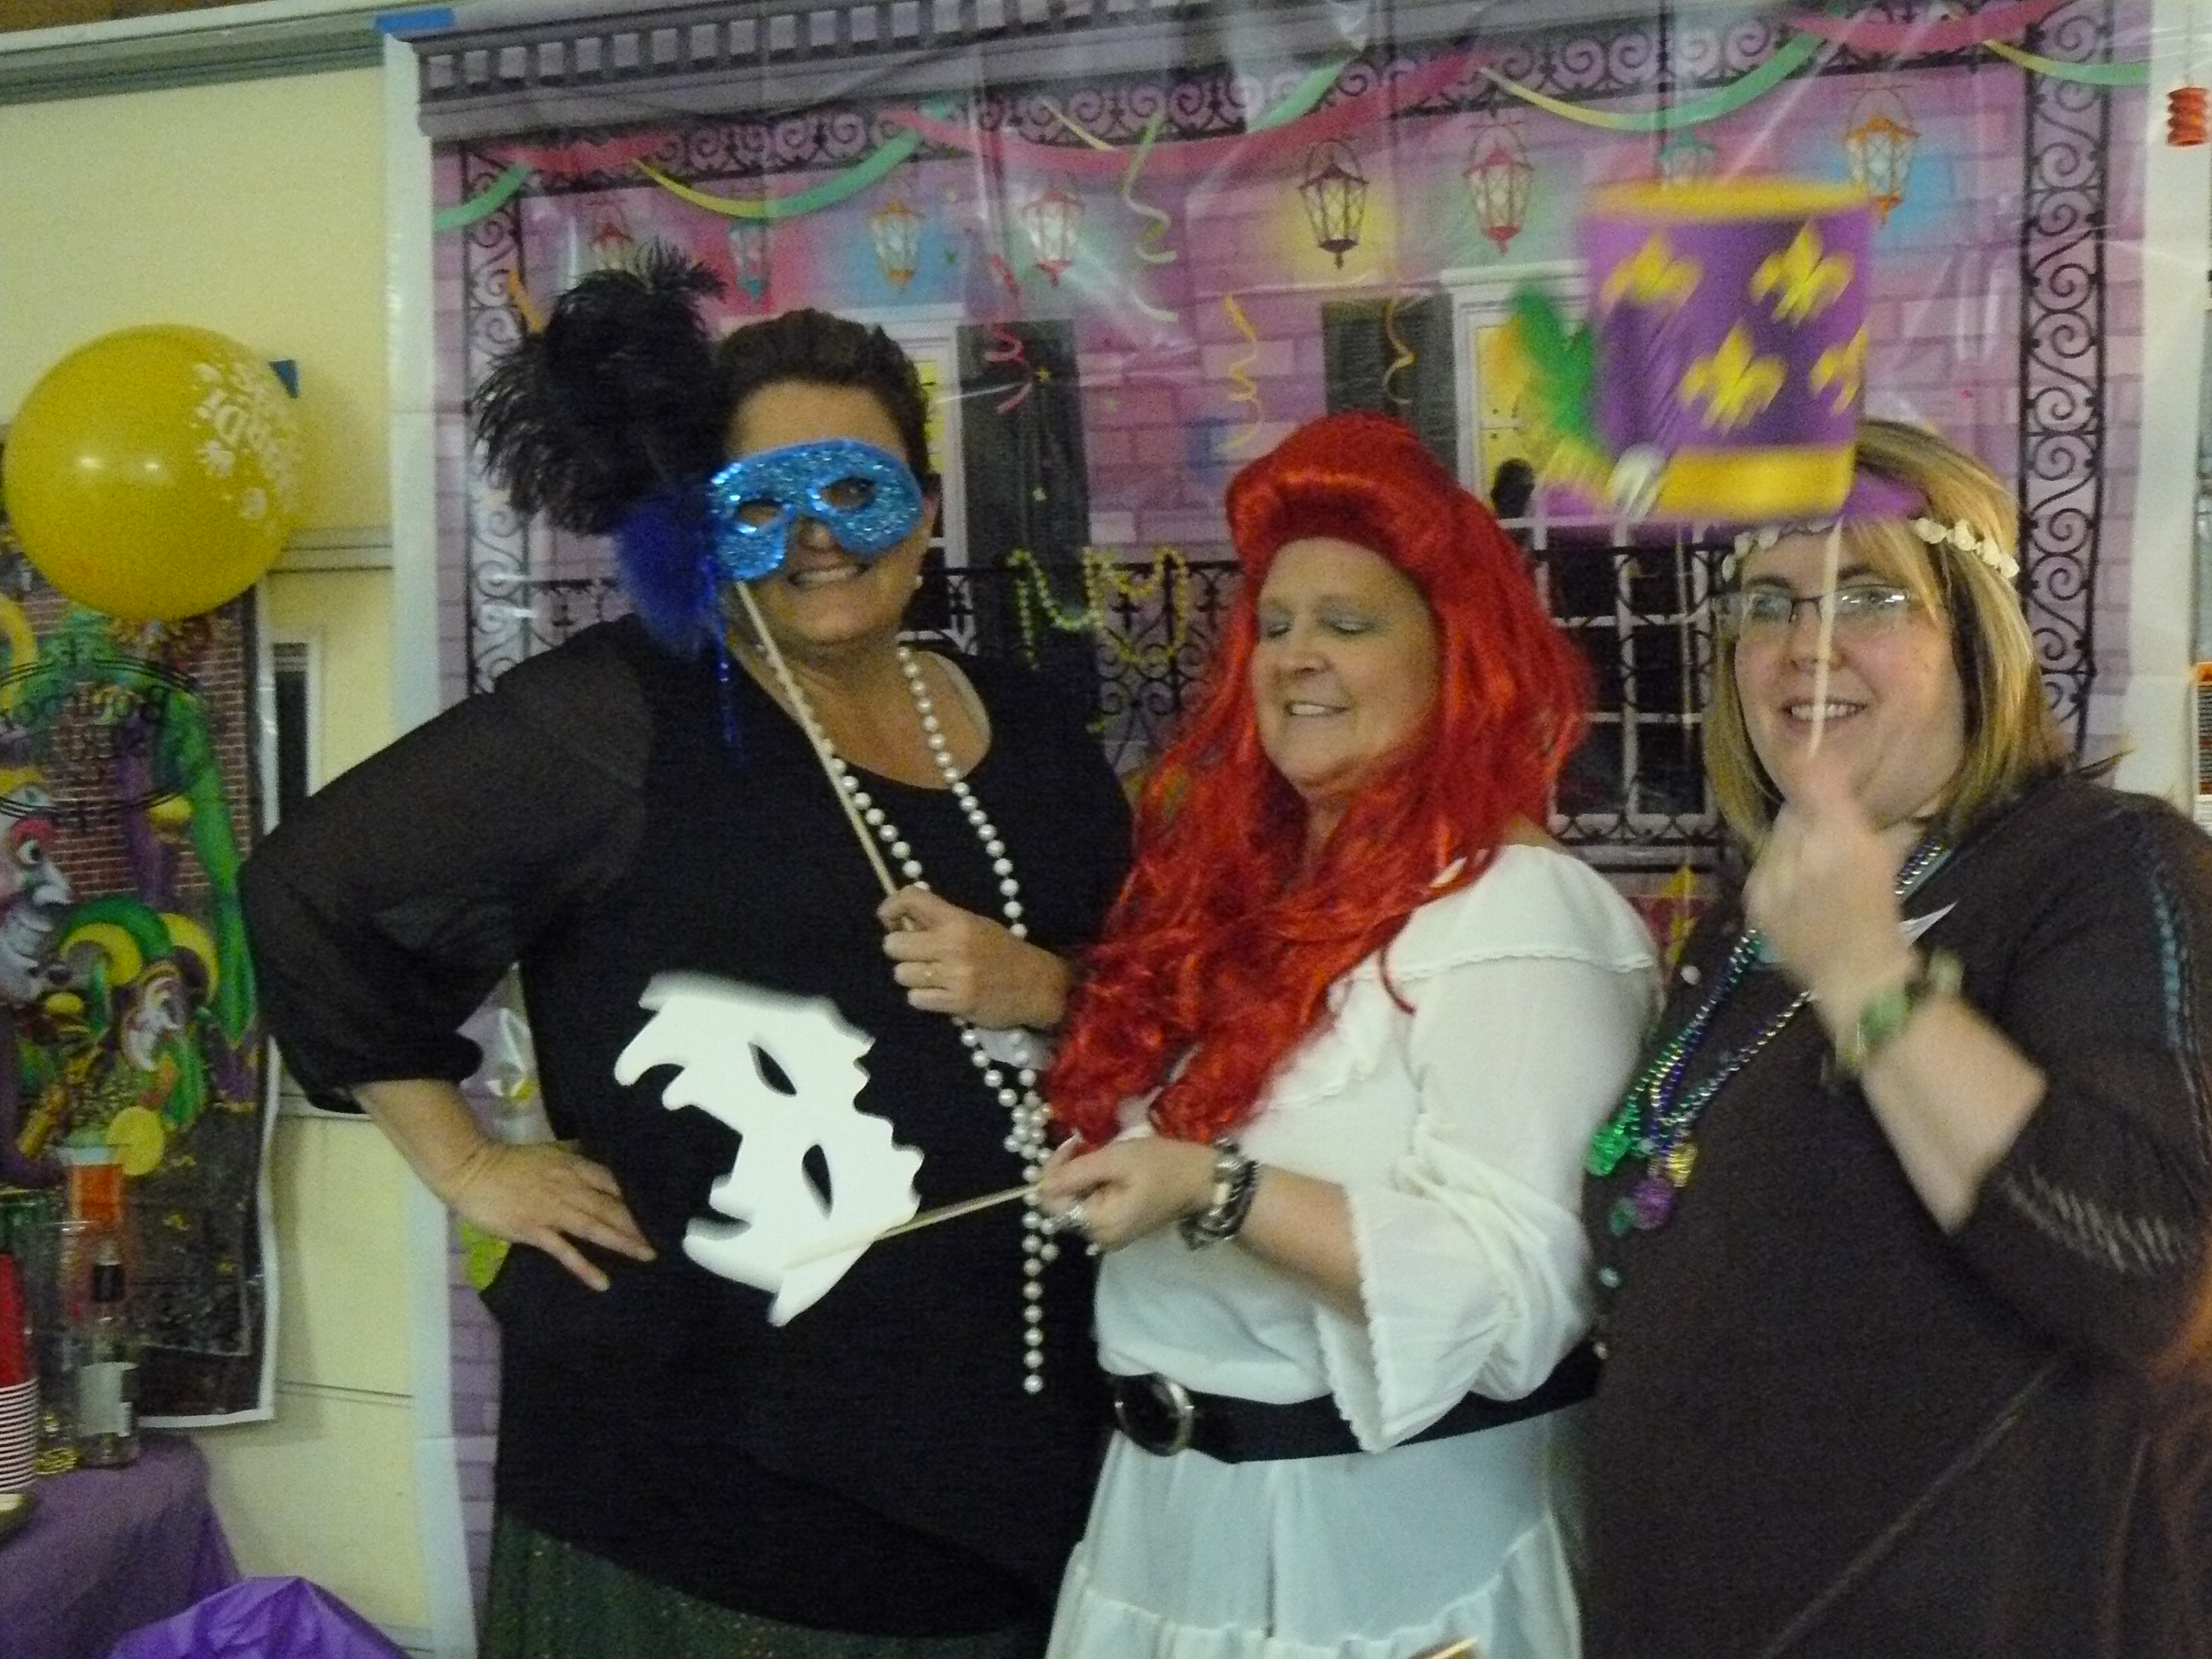 Mardi Gras Party Guests Go All Out for Murder Mystery Night